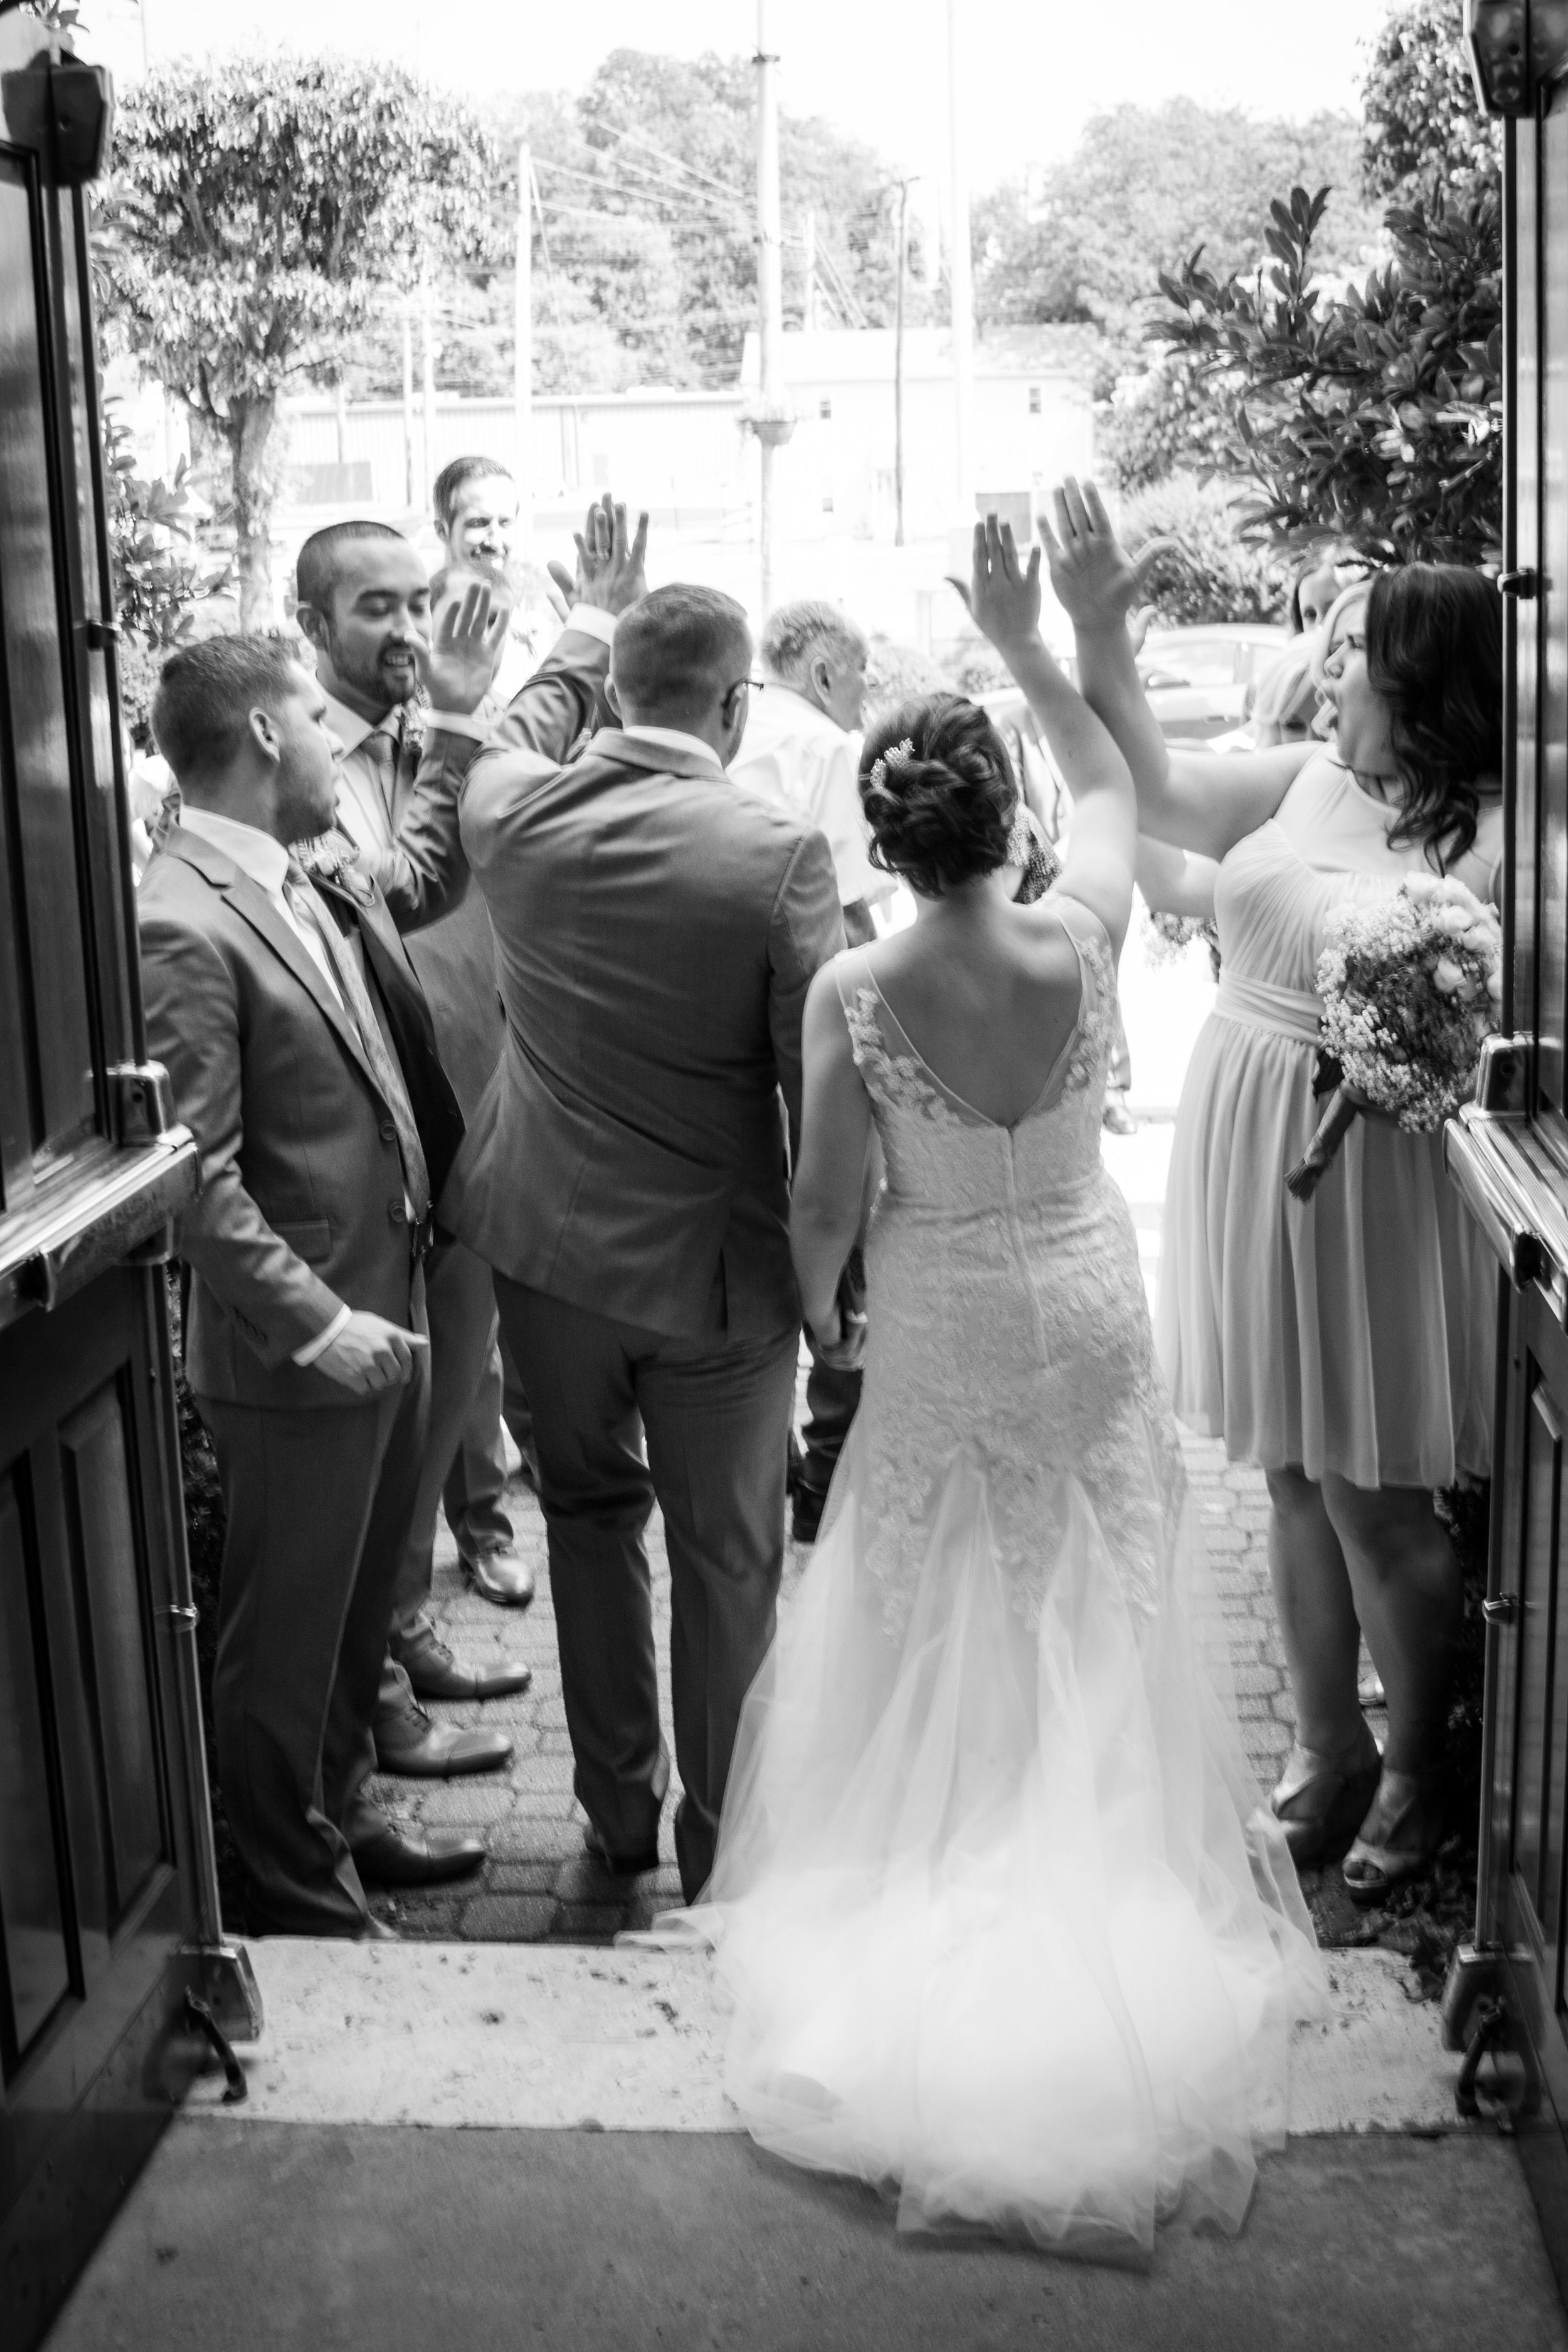 High fives for the lovebirds! Love this!